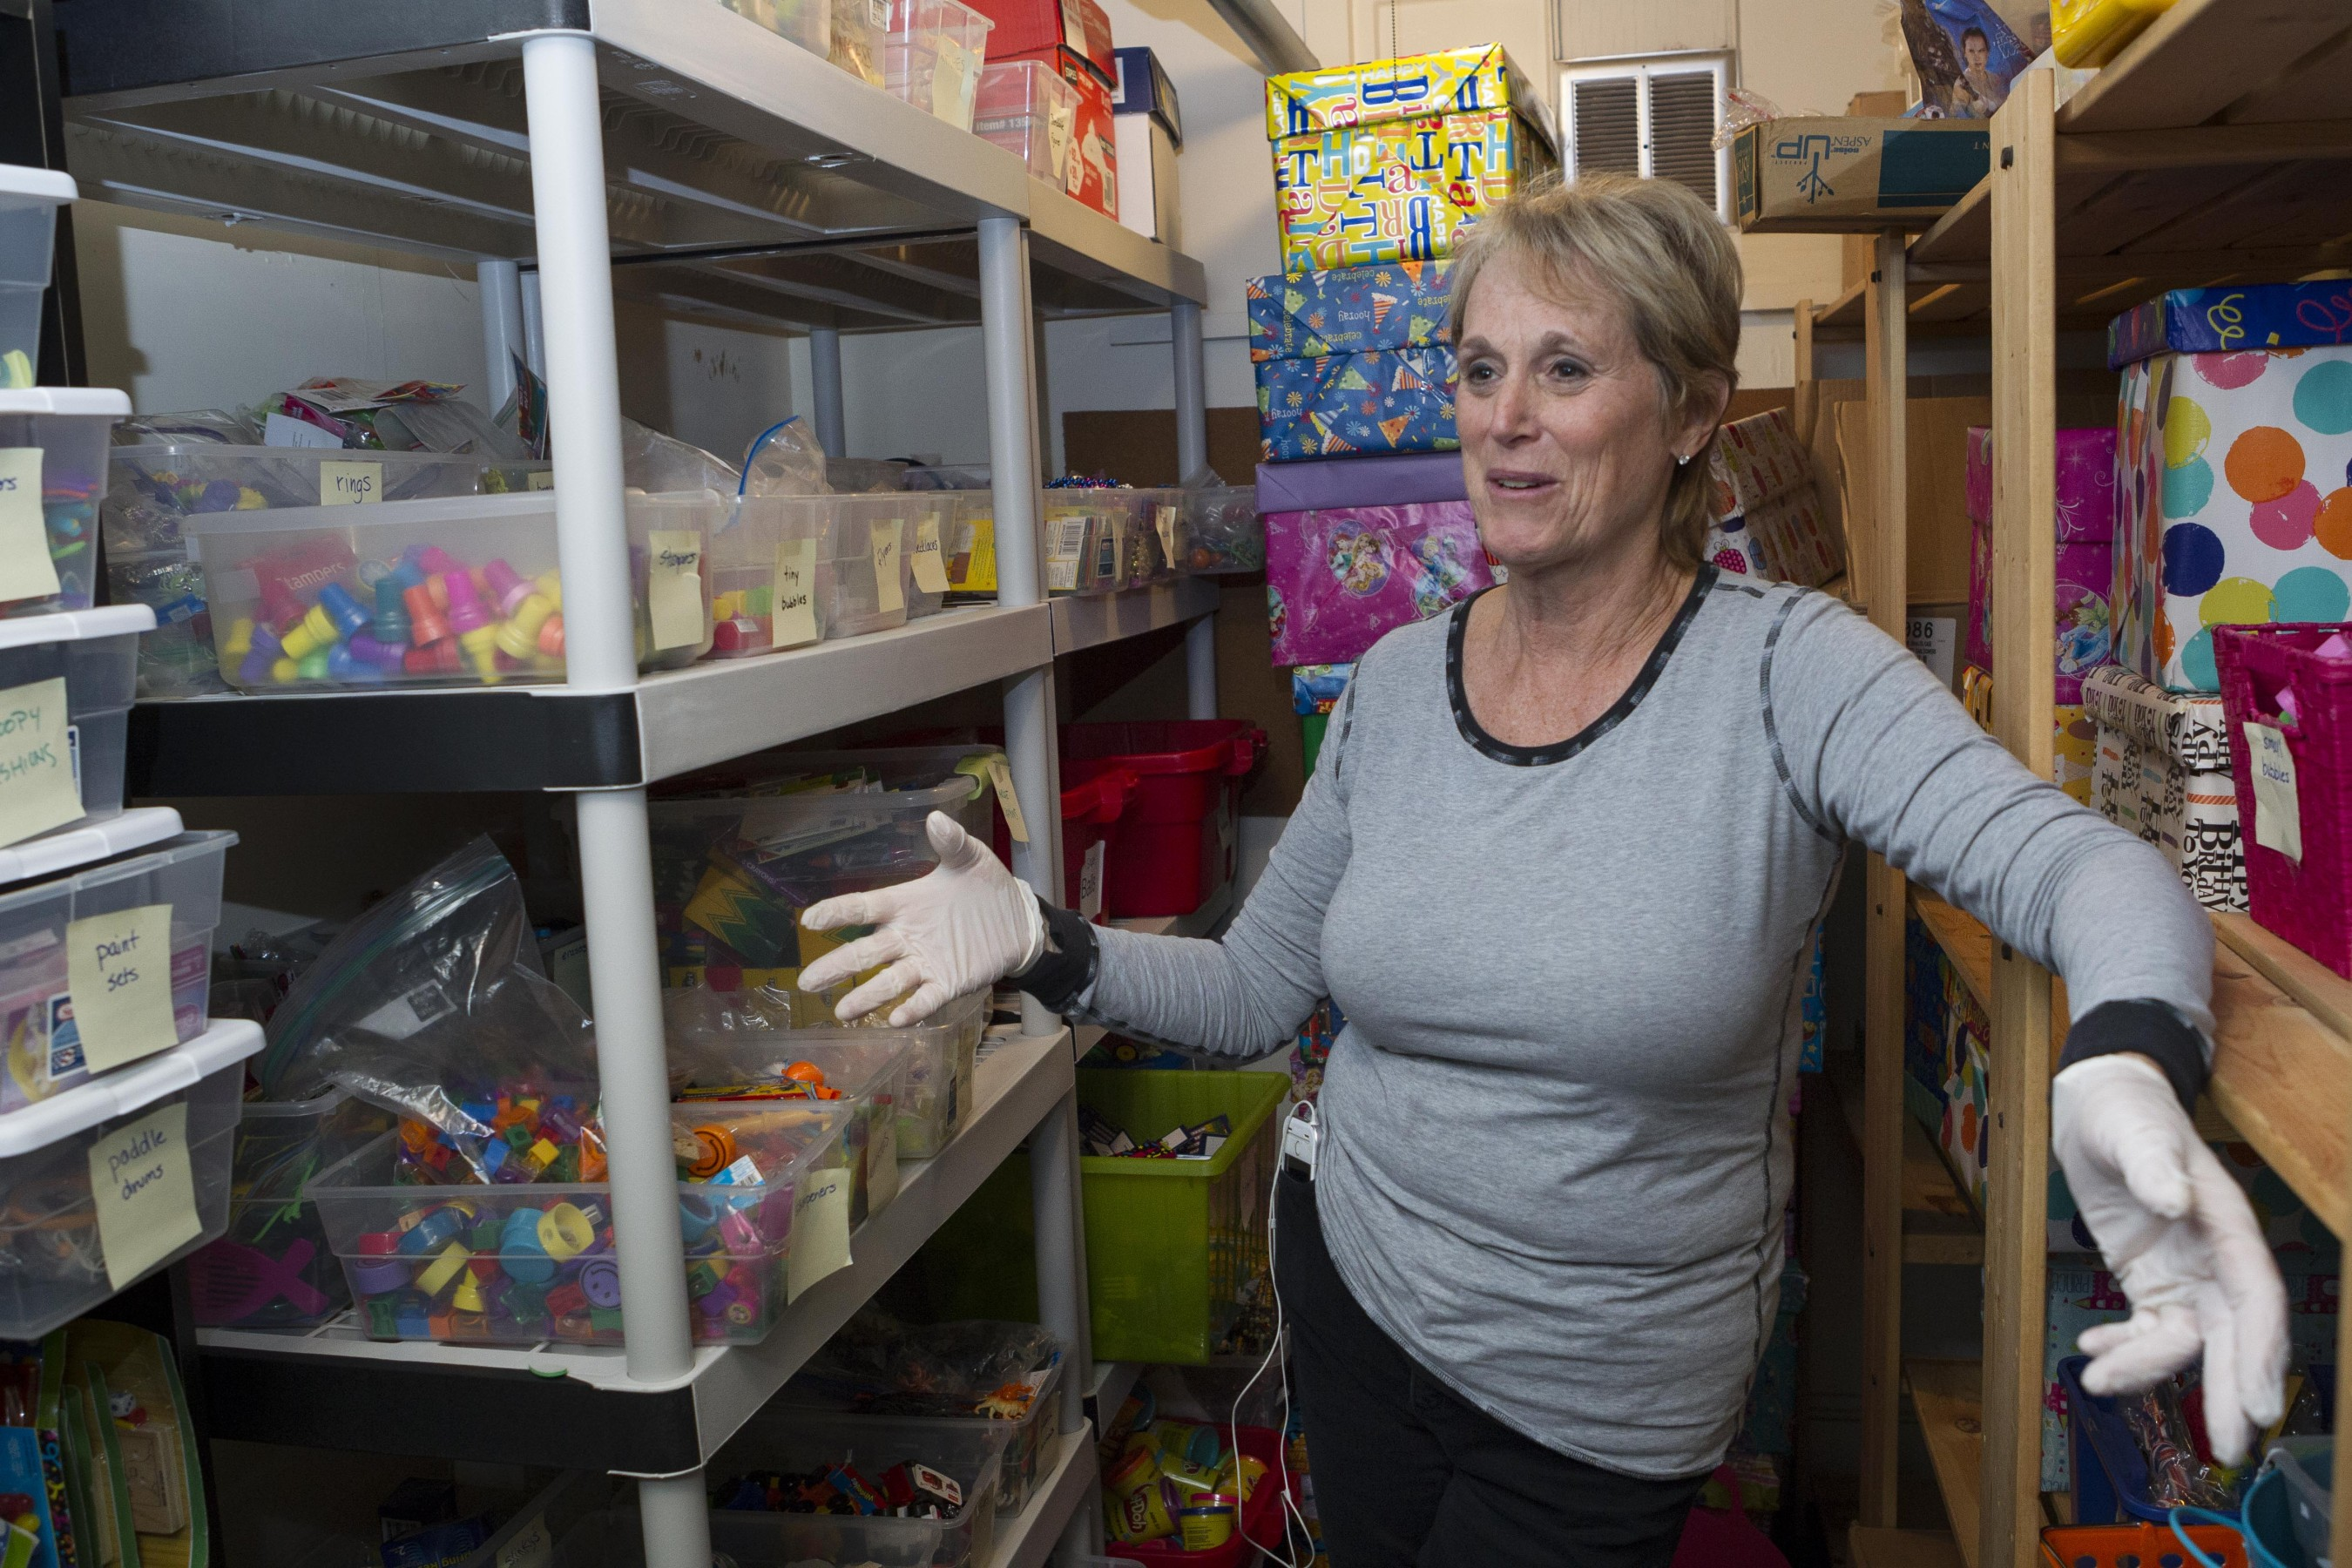 Jill Glazer, a long time Birthday Wishes' volunteer, shows how smaller items for goodie bags are stored at the NGO's main office in Newton, Massachusetts on Wednesday November 18, 2015. Birthday Wishes is a NGO that organizes birthday parties for homeless children in Massachusetts, Rhode Island and Long Island, New York.